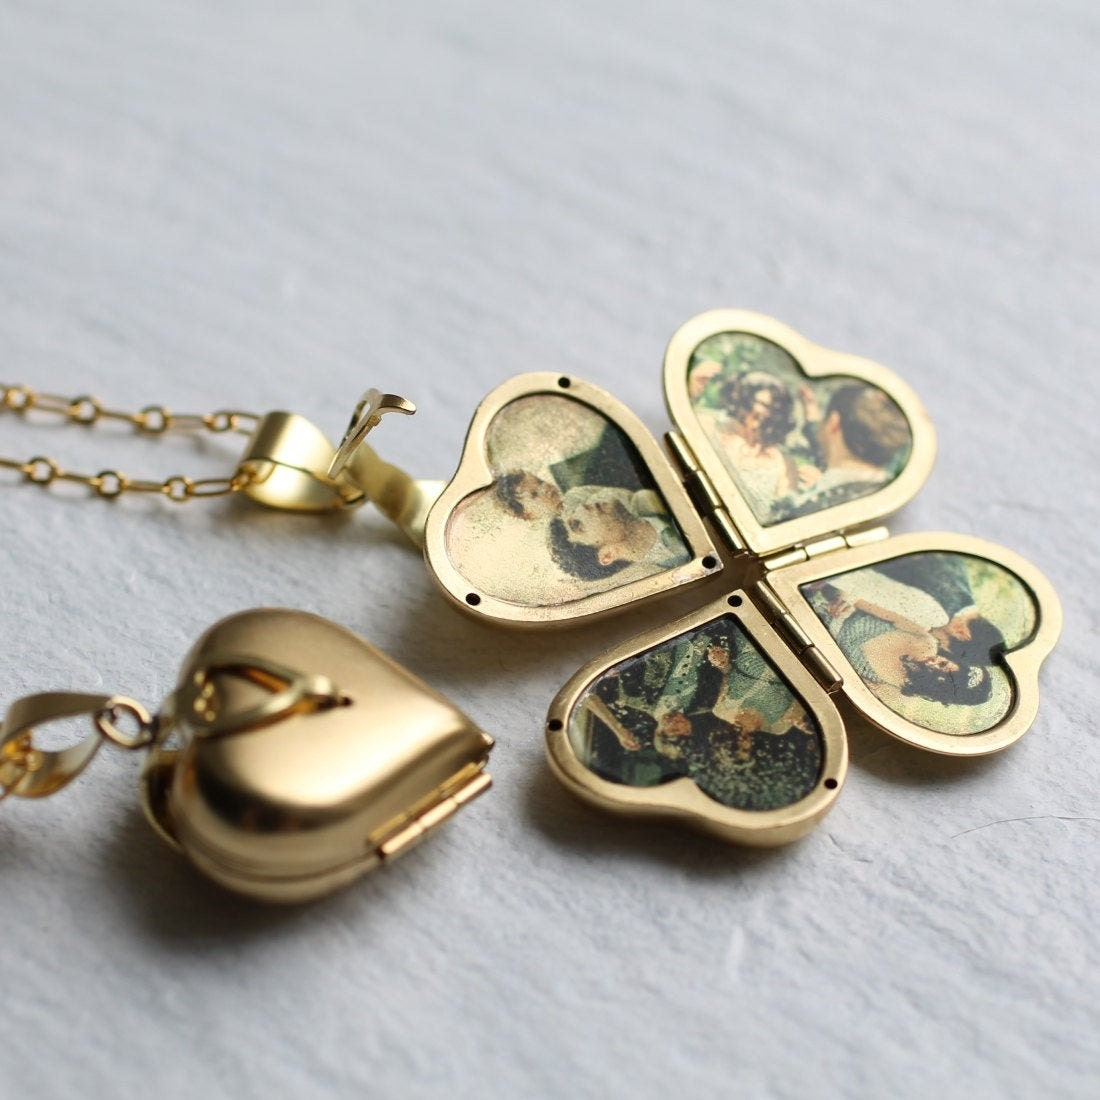 Personalized photo locket from Silk Purse, Sow's Ear